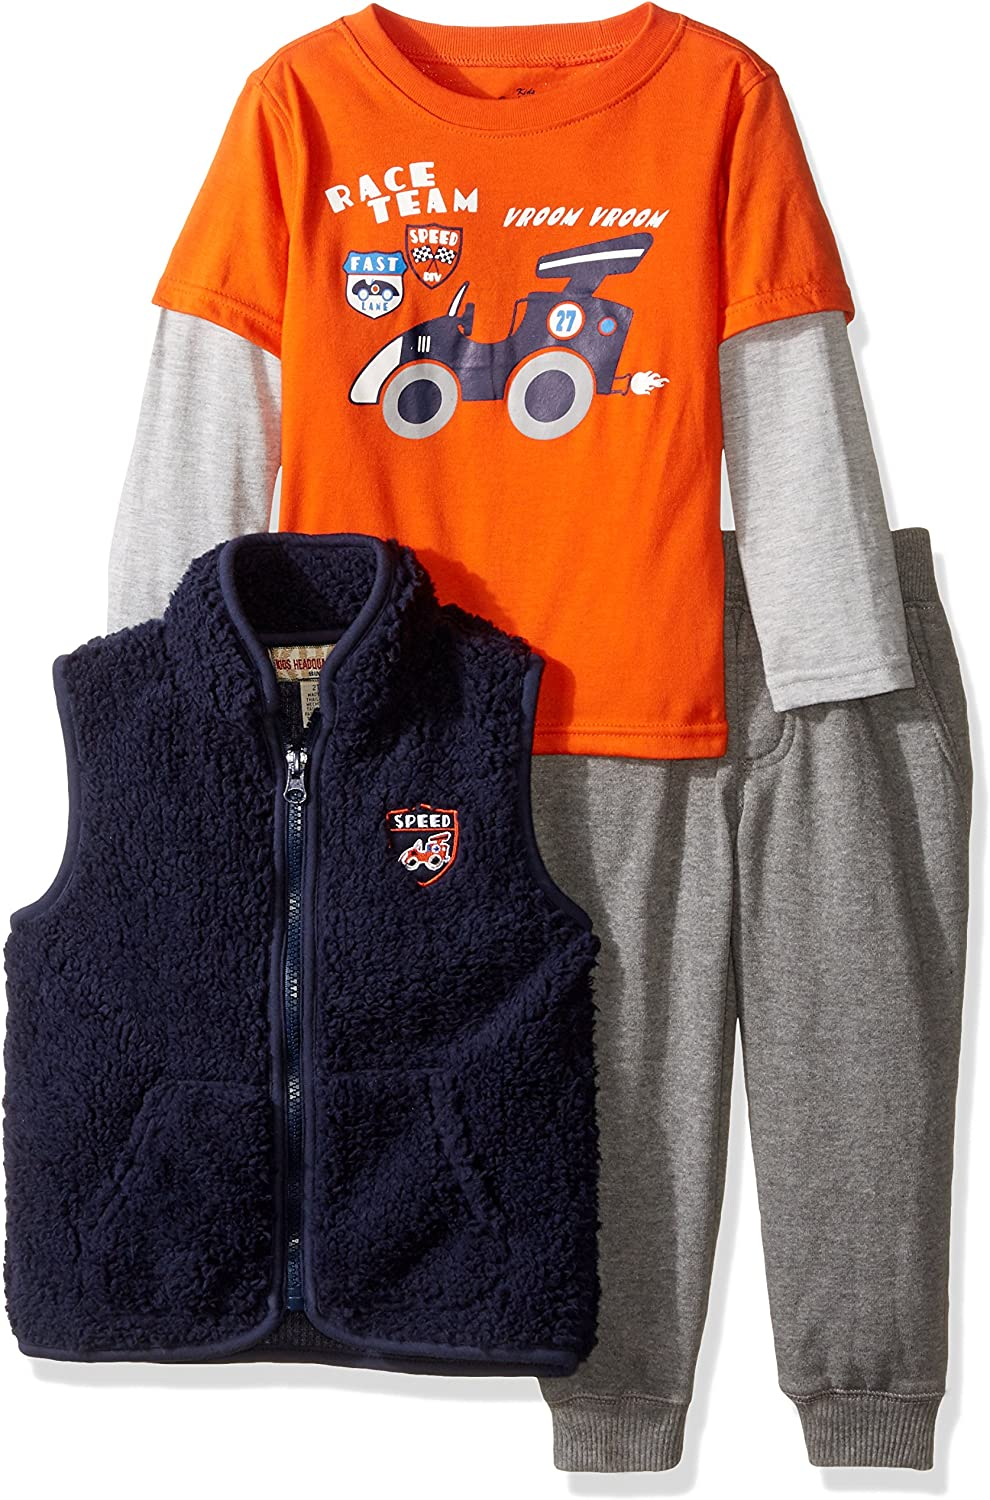 Kids Headquarters Boys 3 Pieces Vest Pants Set